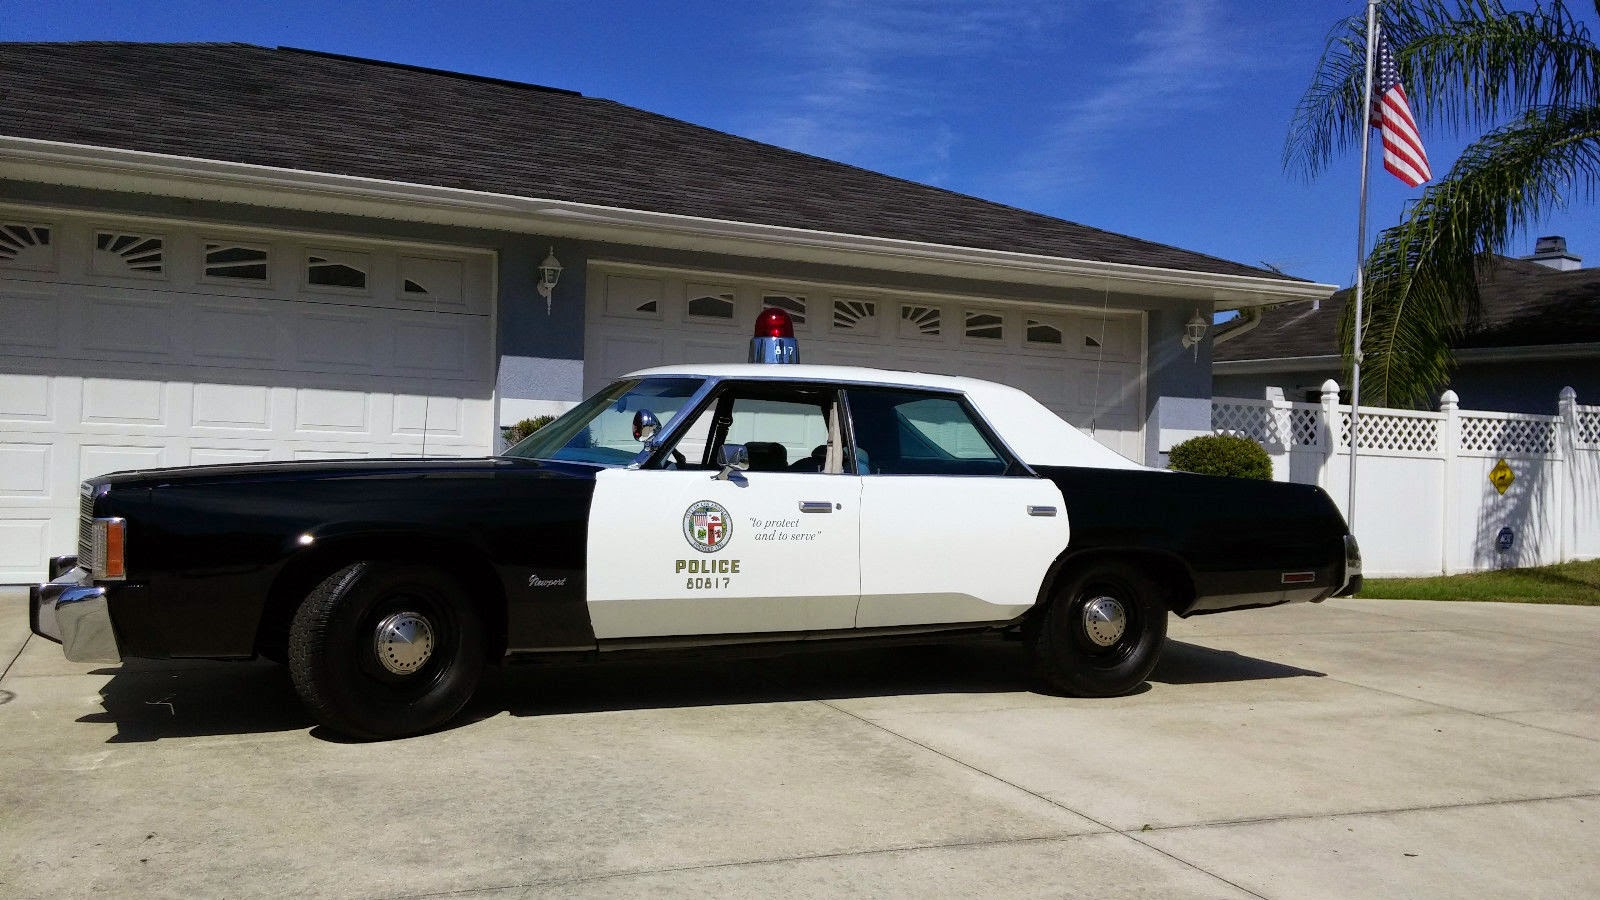 1978 Chrysler Newport 4-Door Hardtop Police Car